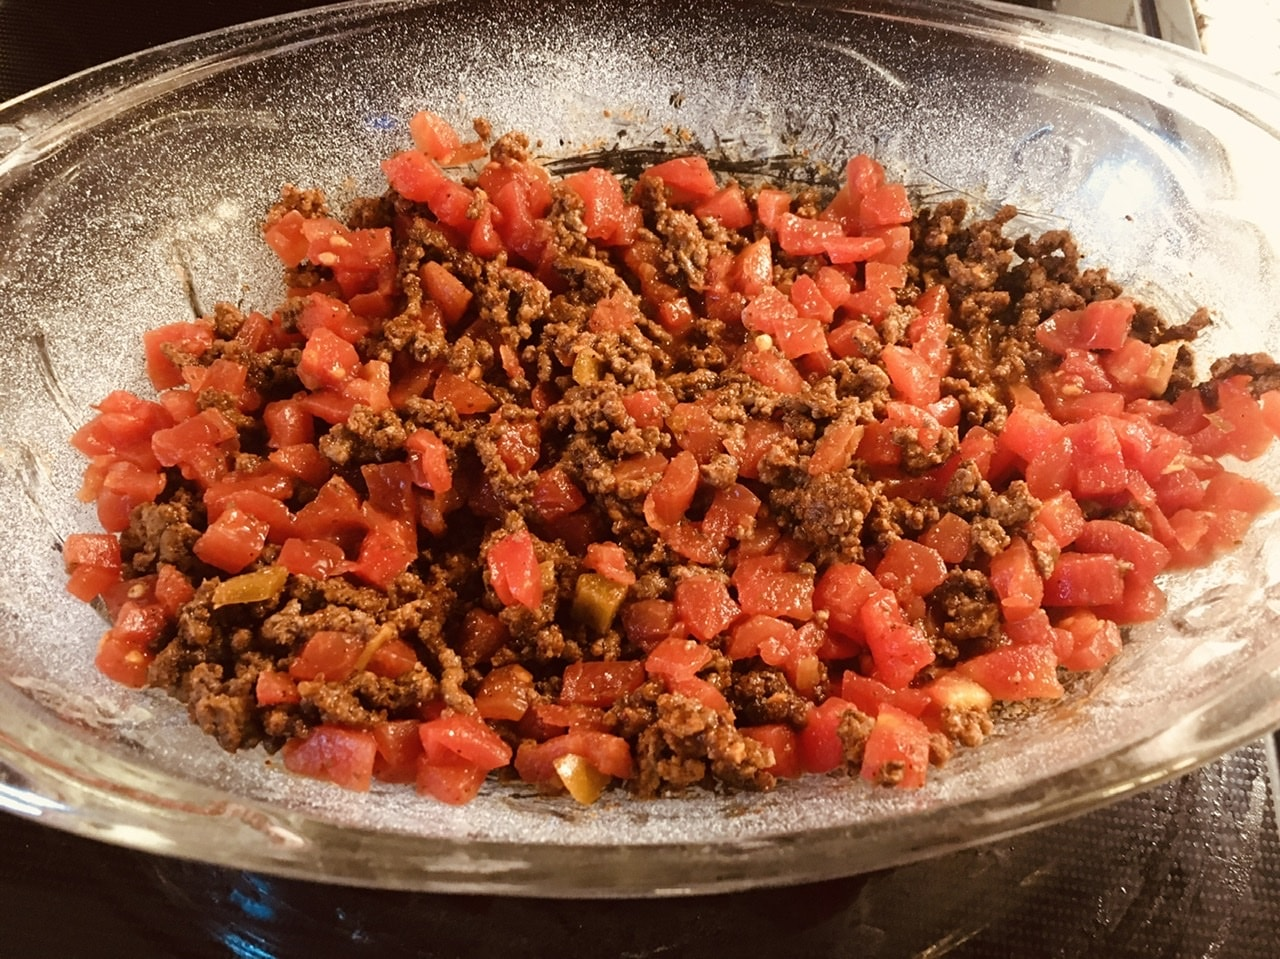 Baked ground beef with diced tomatoes and chilis.